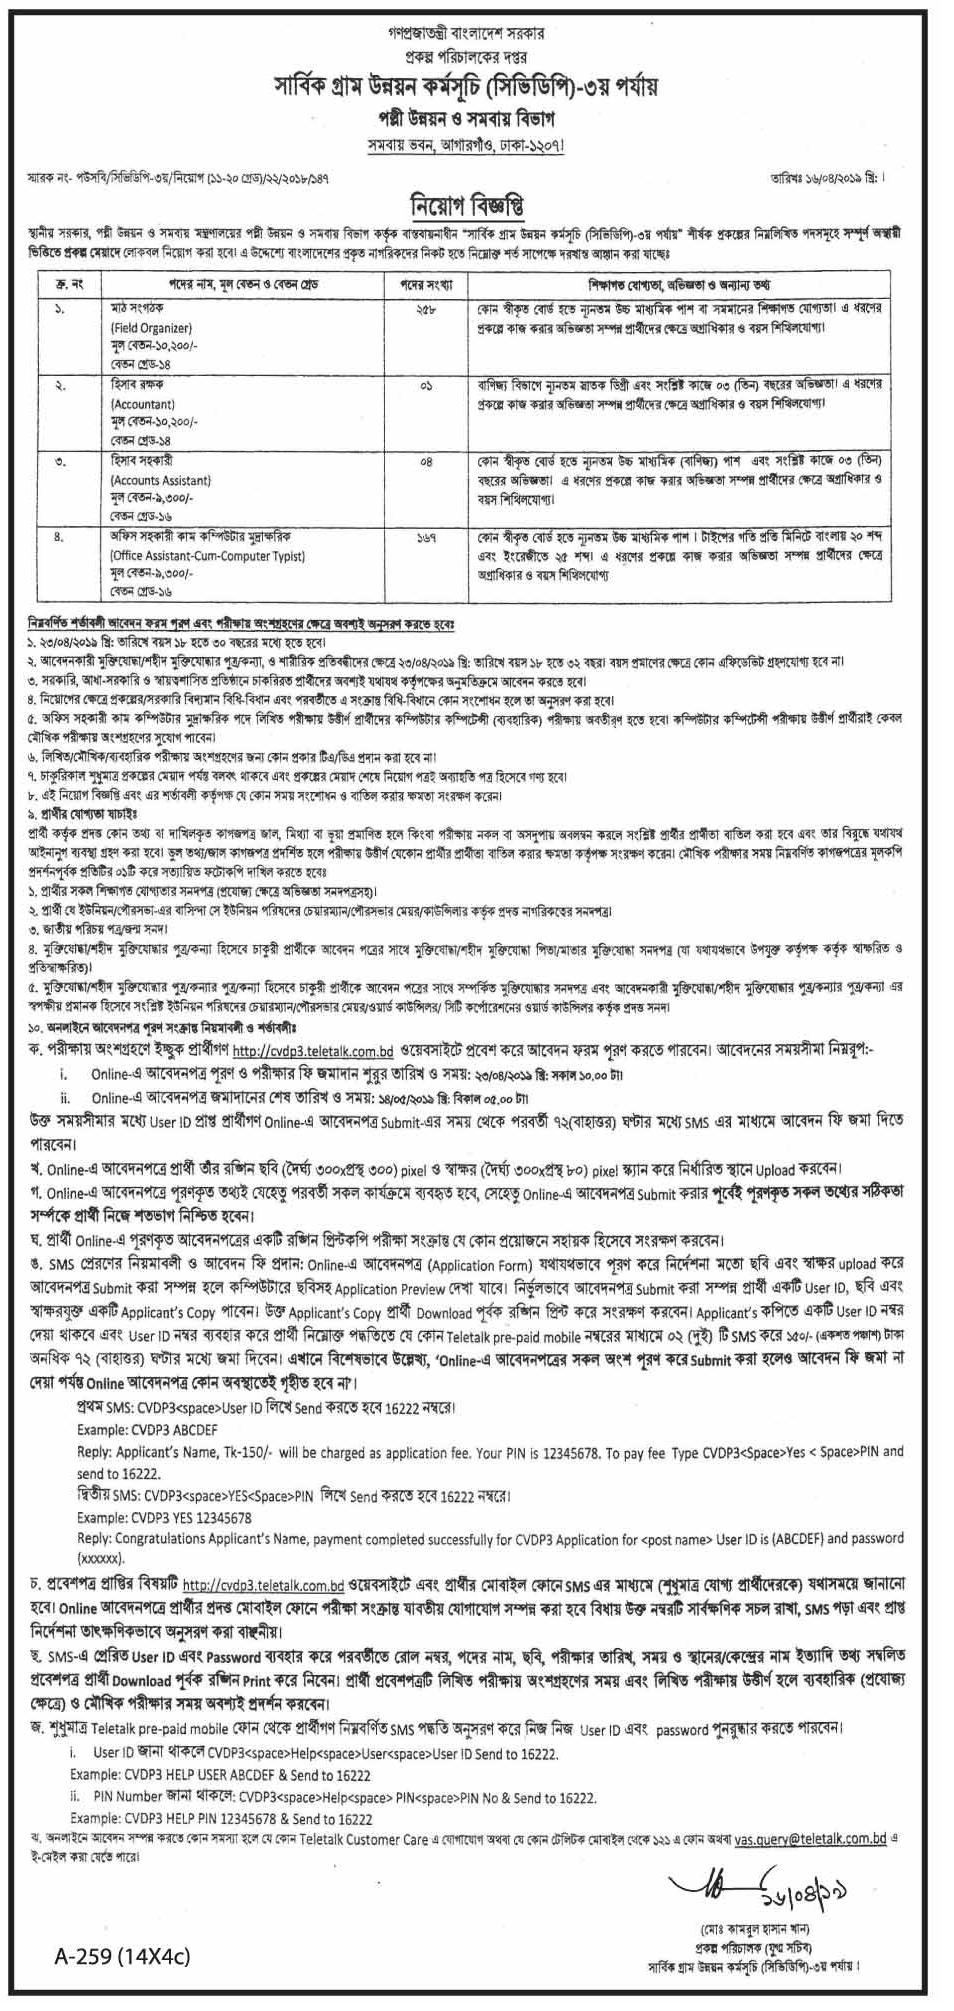 Local Government, Rural Development and Cooperatives Ministry Job Circular 2019